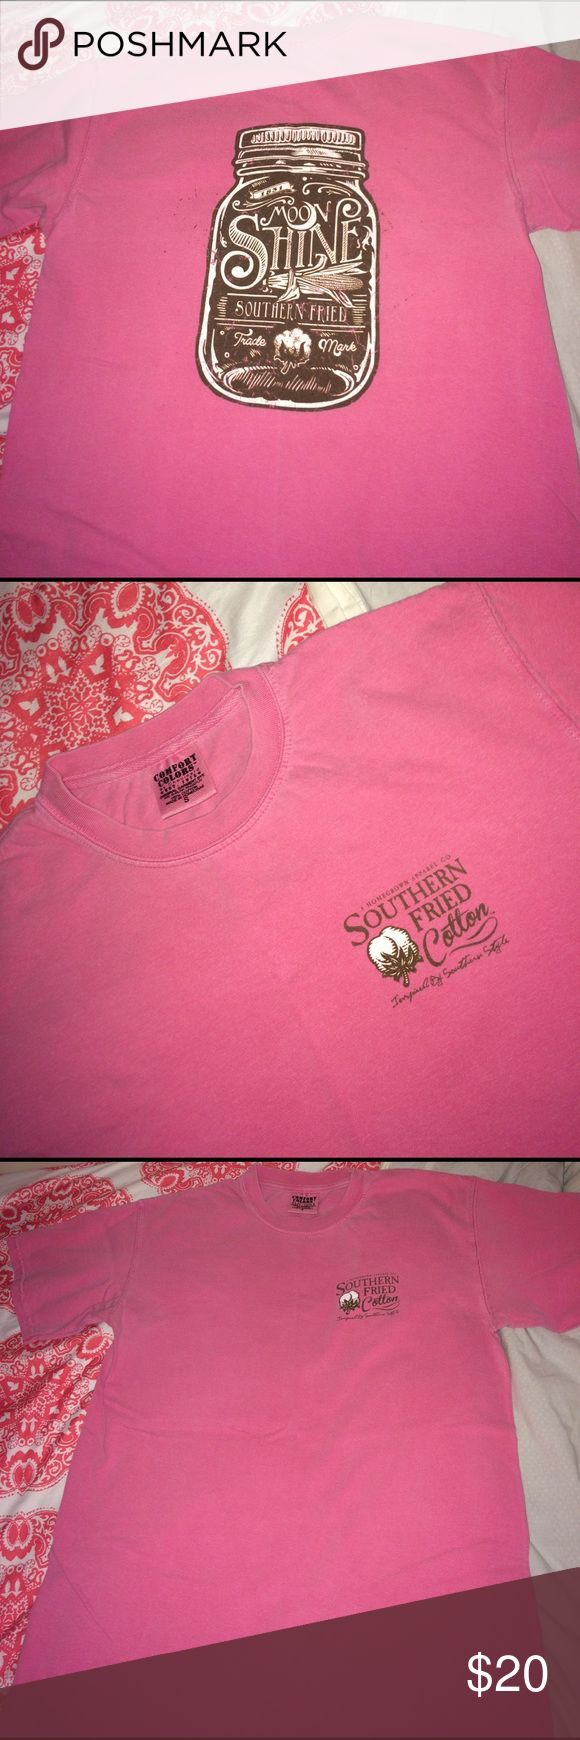 Southern Fried Cotton Tee So Fri Co cotton tee shirt! Short sleeve, pink, printed on Comfort Colors. Great condition. Size small. Logo on the front with a mason jar on the back! Vineyard Vines Tops Tees - Short Sleeve